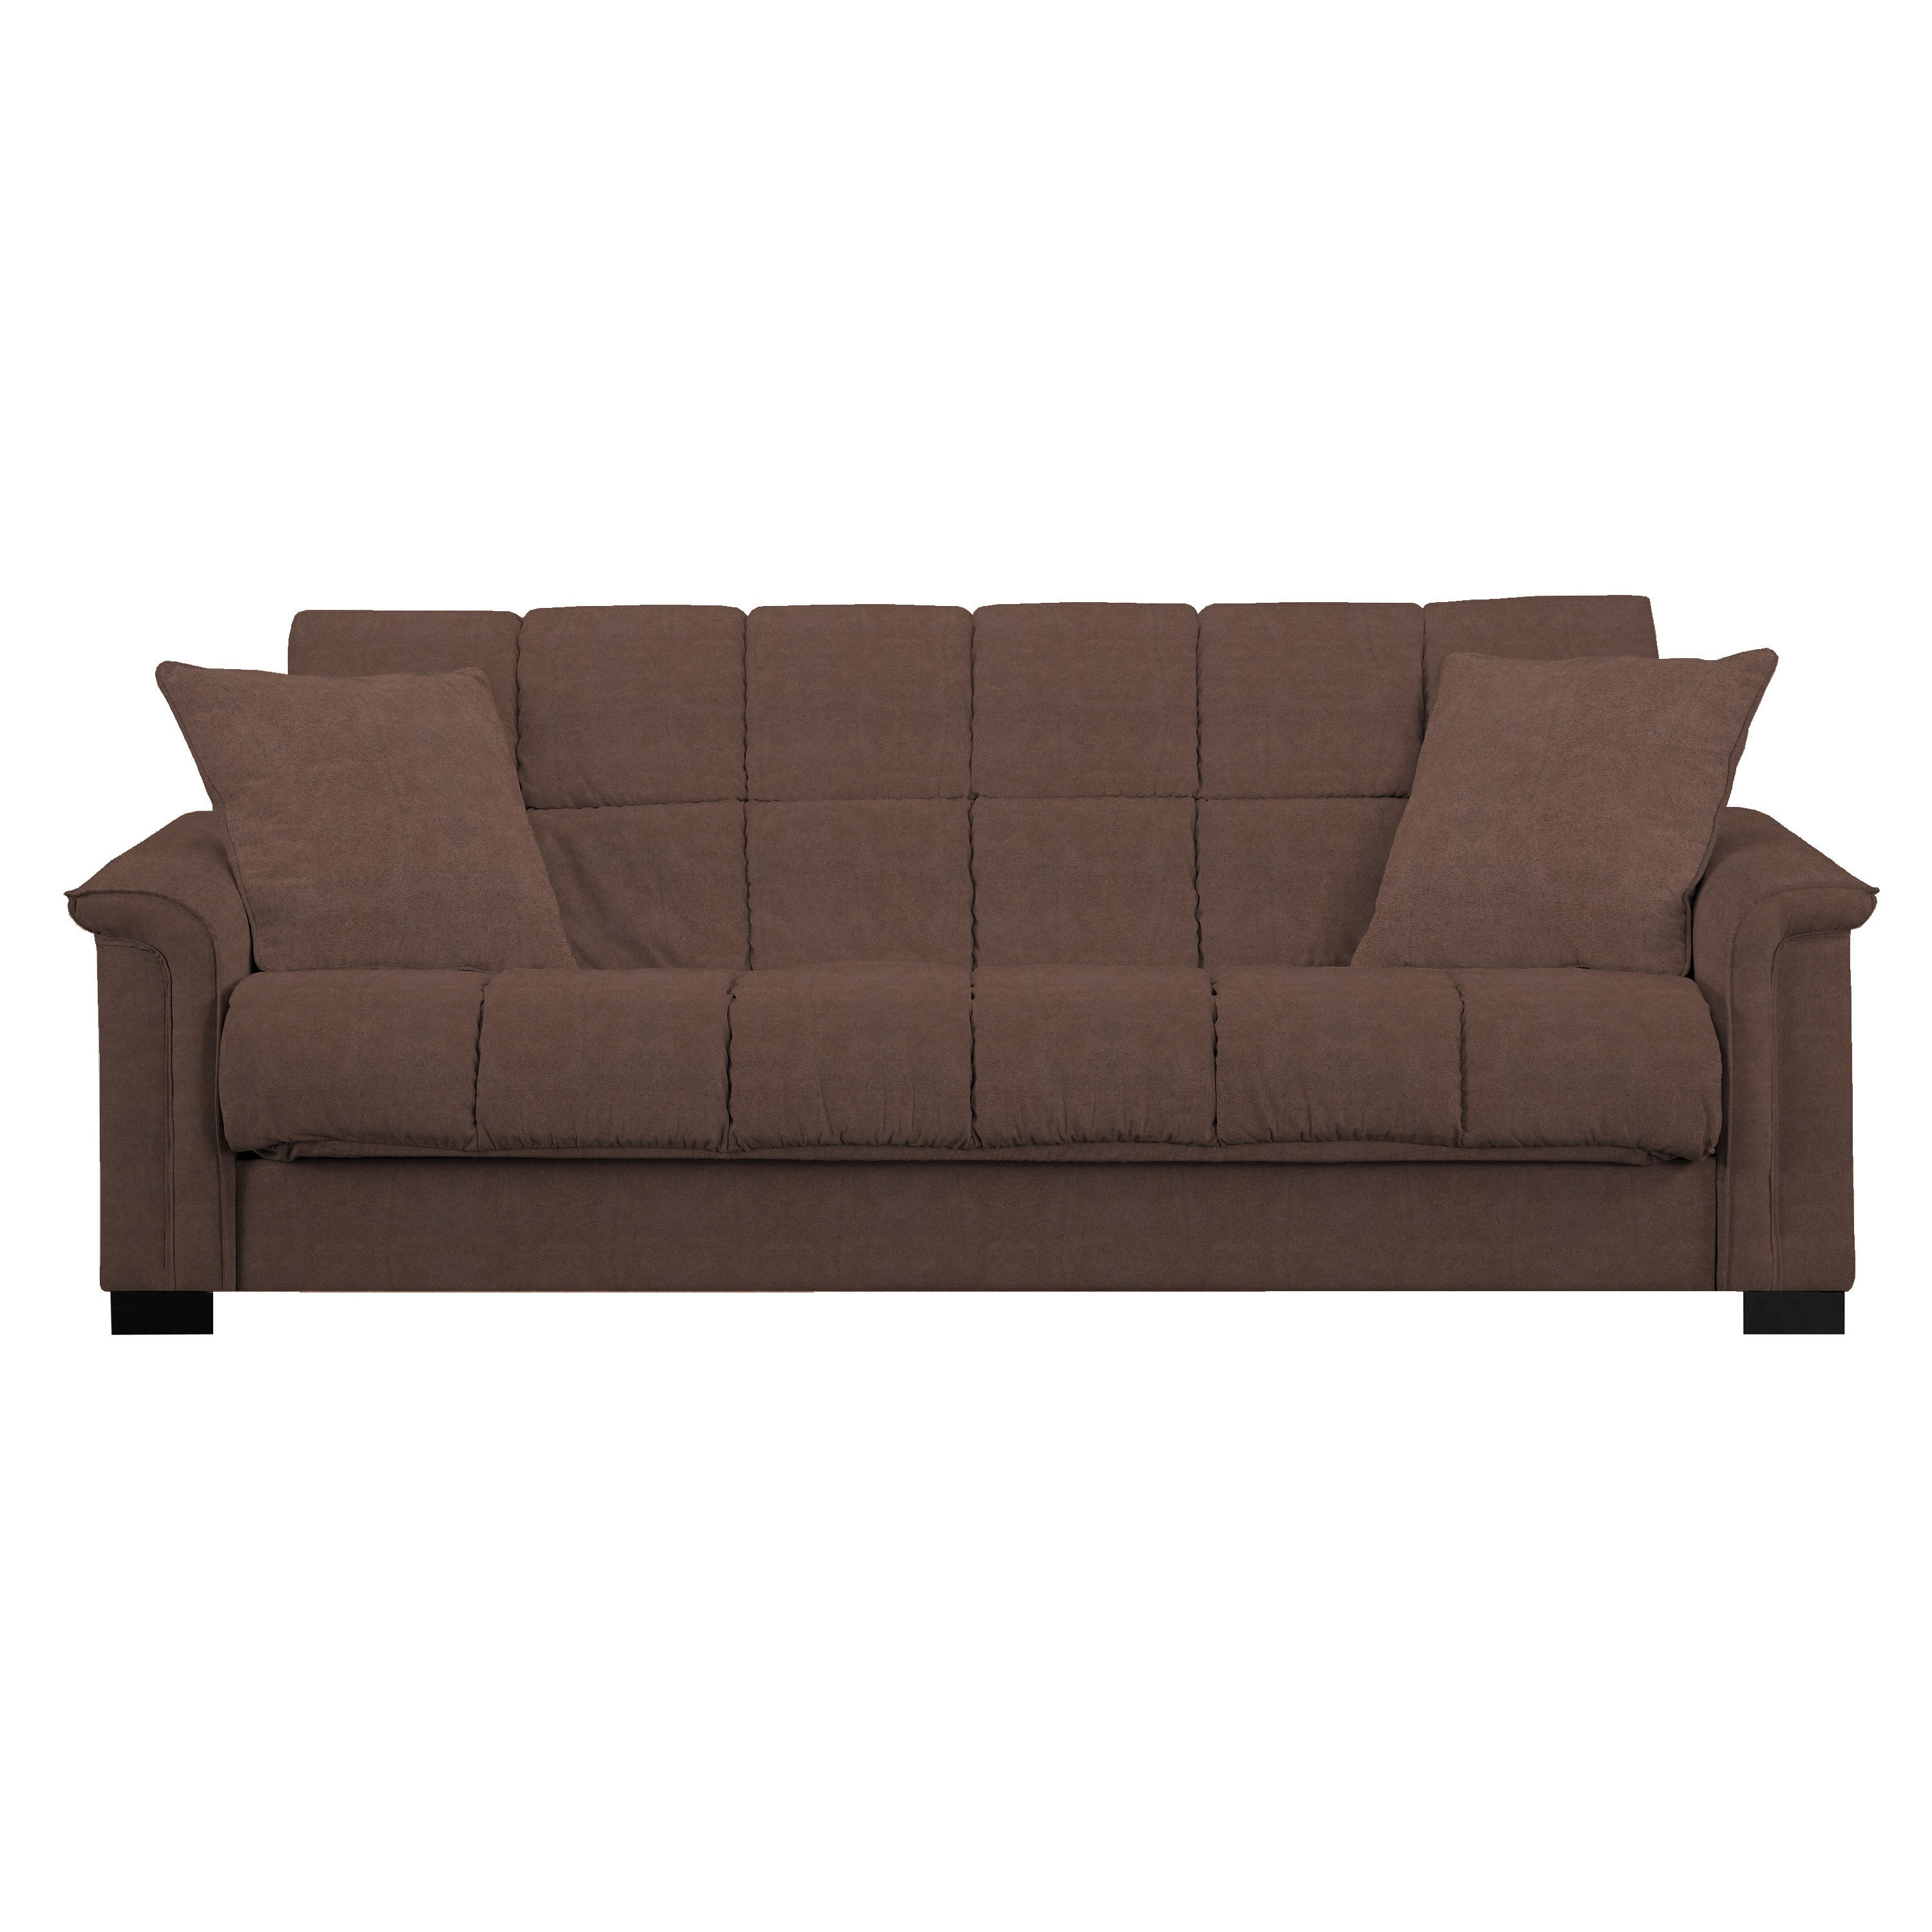 Handy Living Caroline Brown Microfiber Convert A Couch Sleeper Sofa On Free Shipping Today 10188054